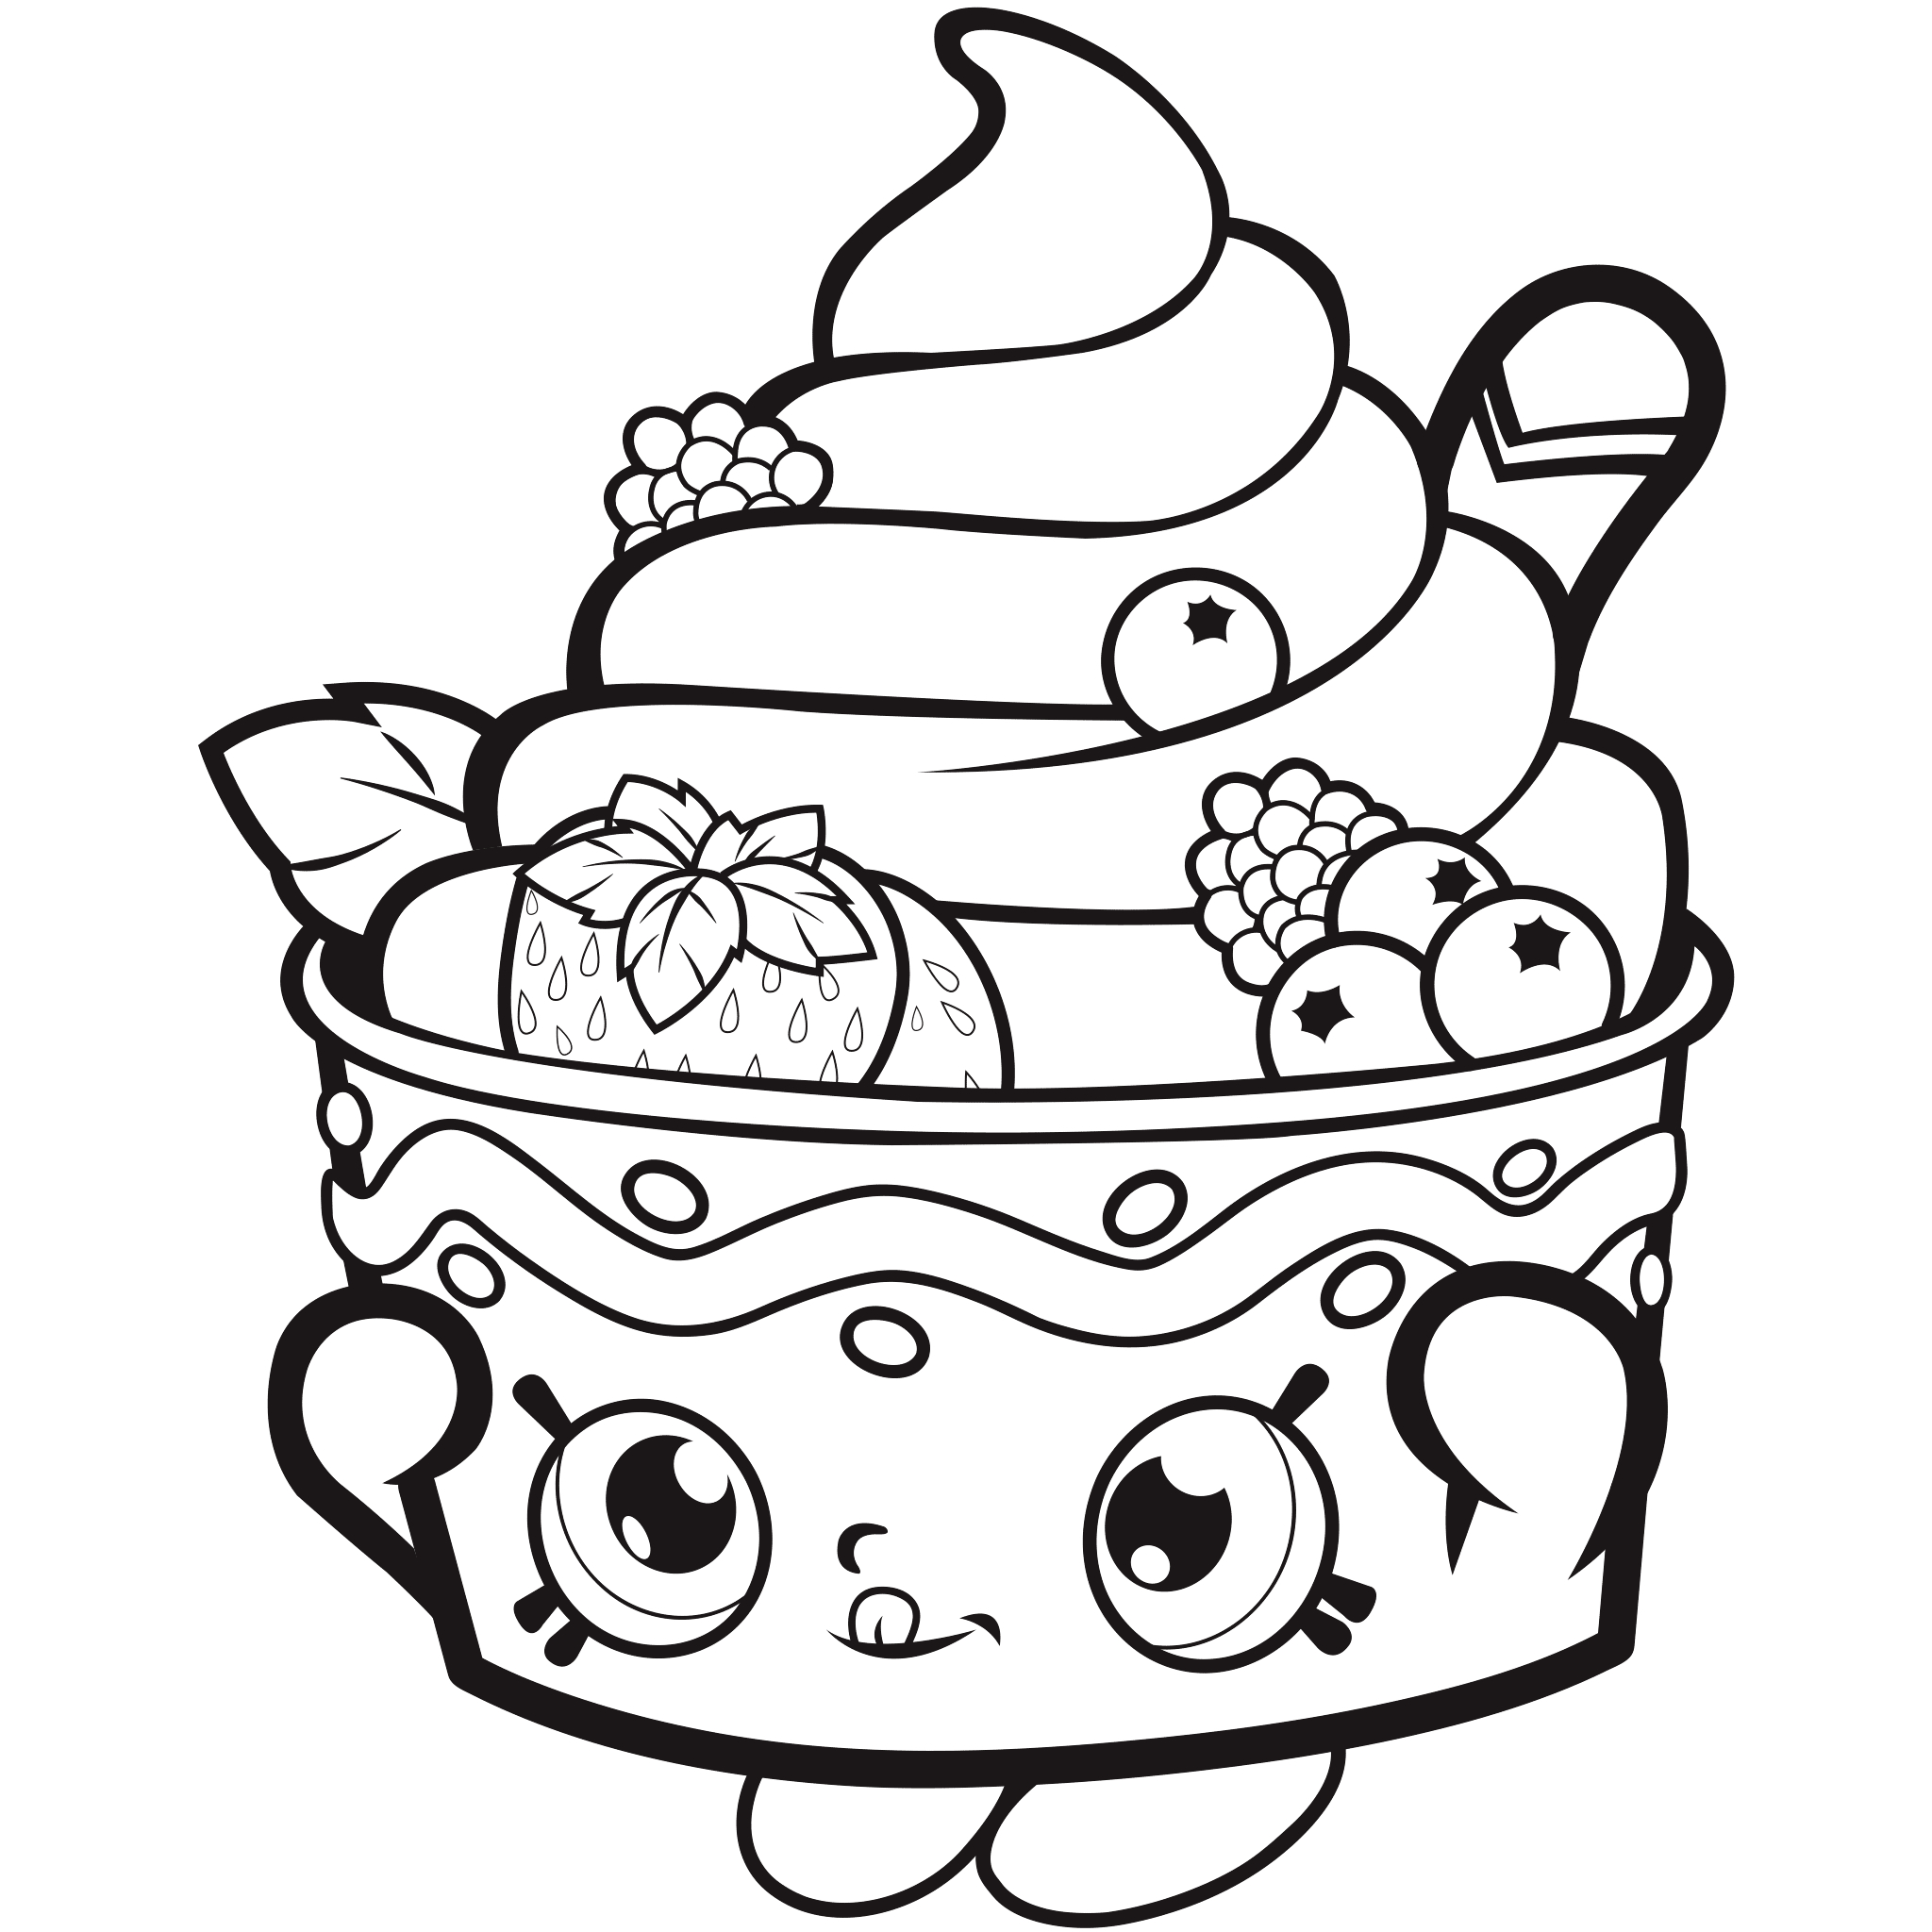 Coloring Pages : Free Shopkinsoloring Pages For Kids Picture Ideas - Shopkins Coloring Pages Free Printable